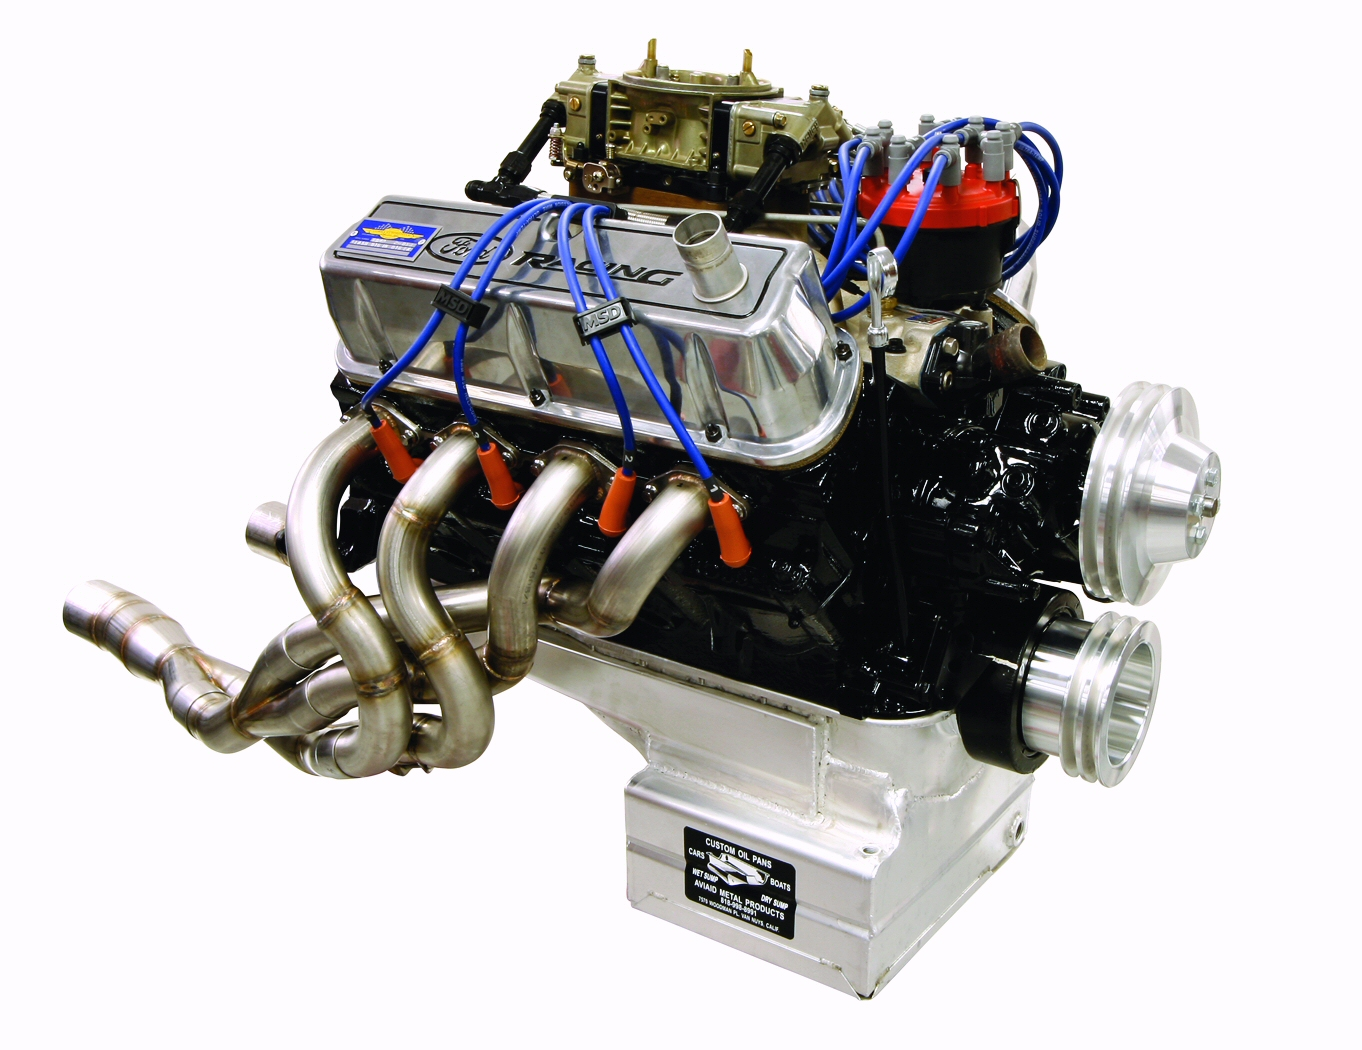 Cobra automotive road race engine